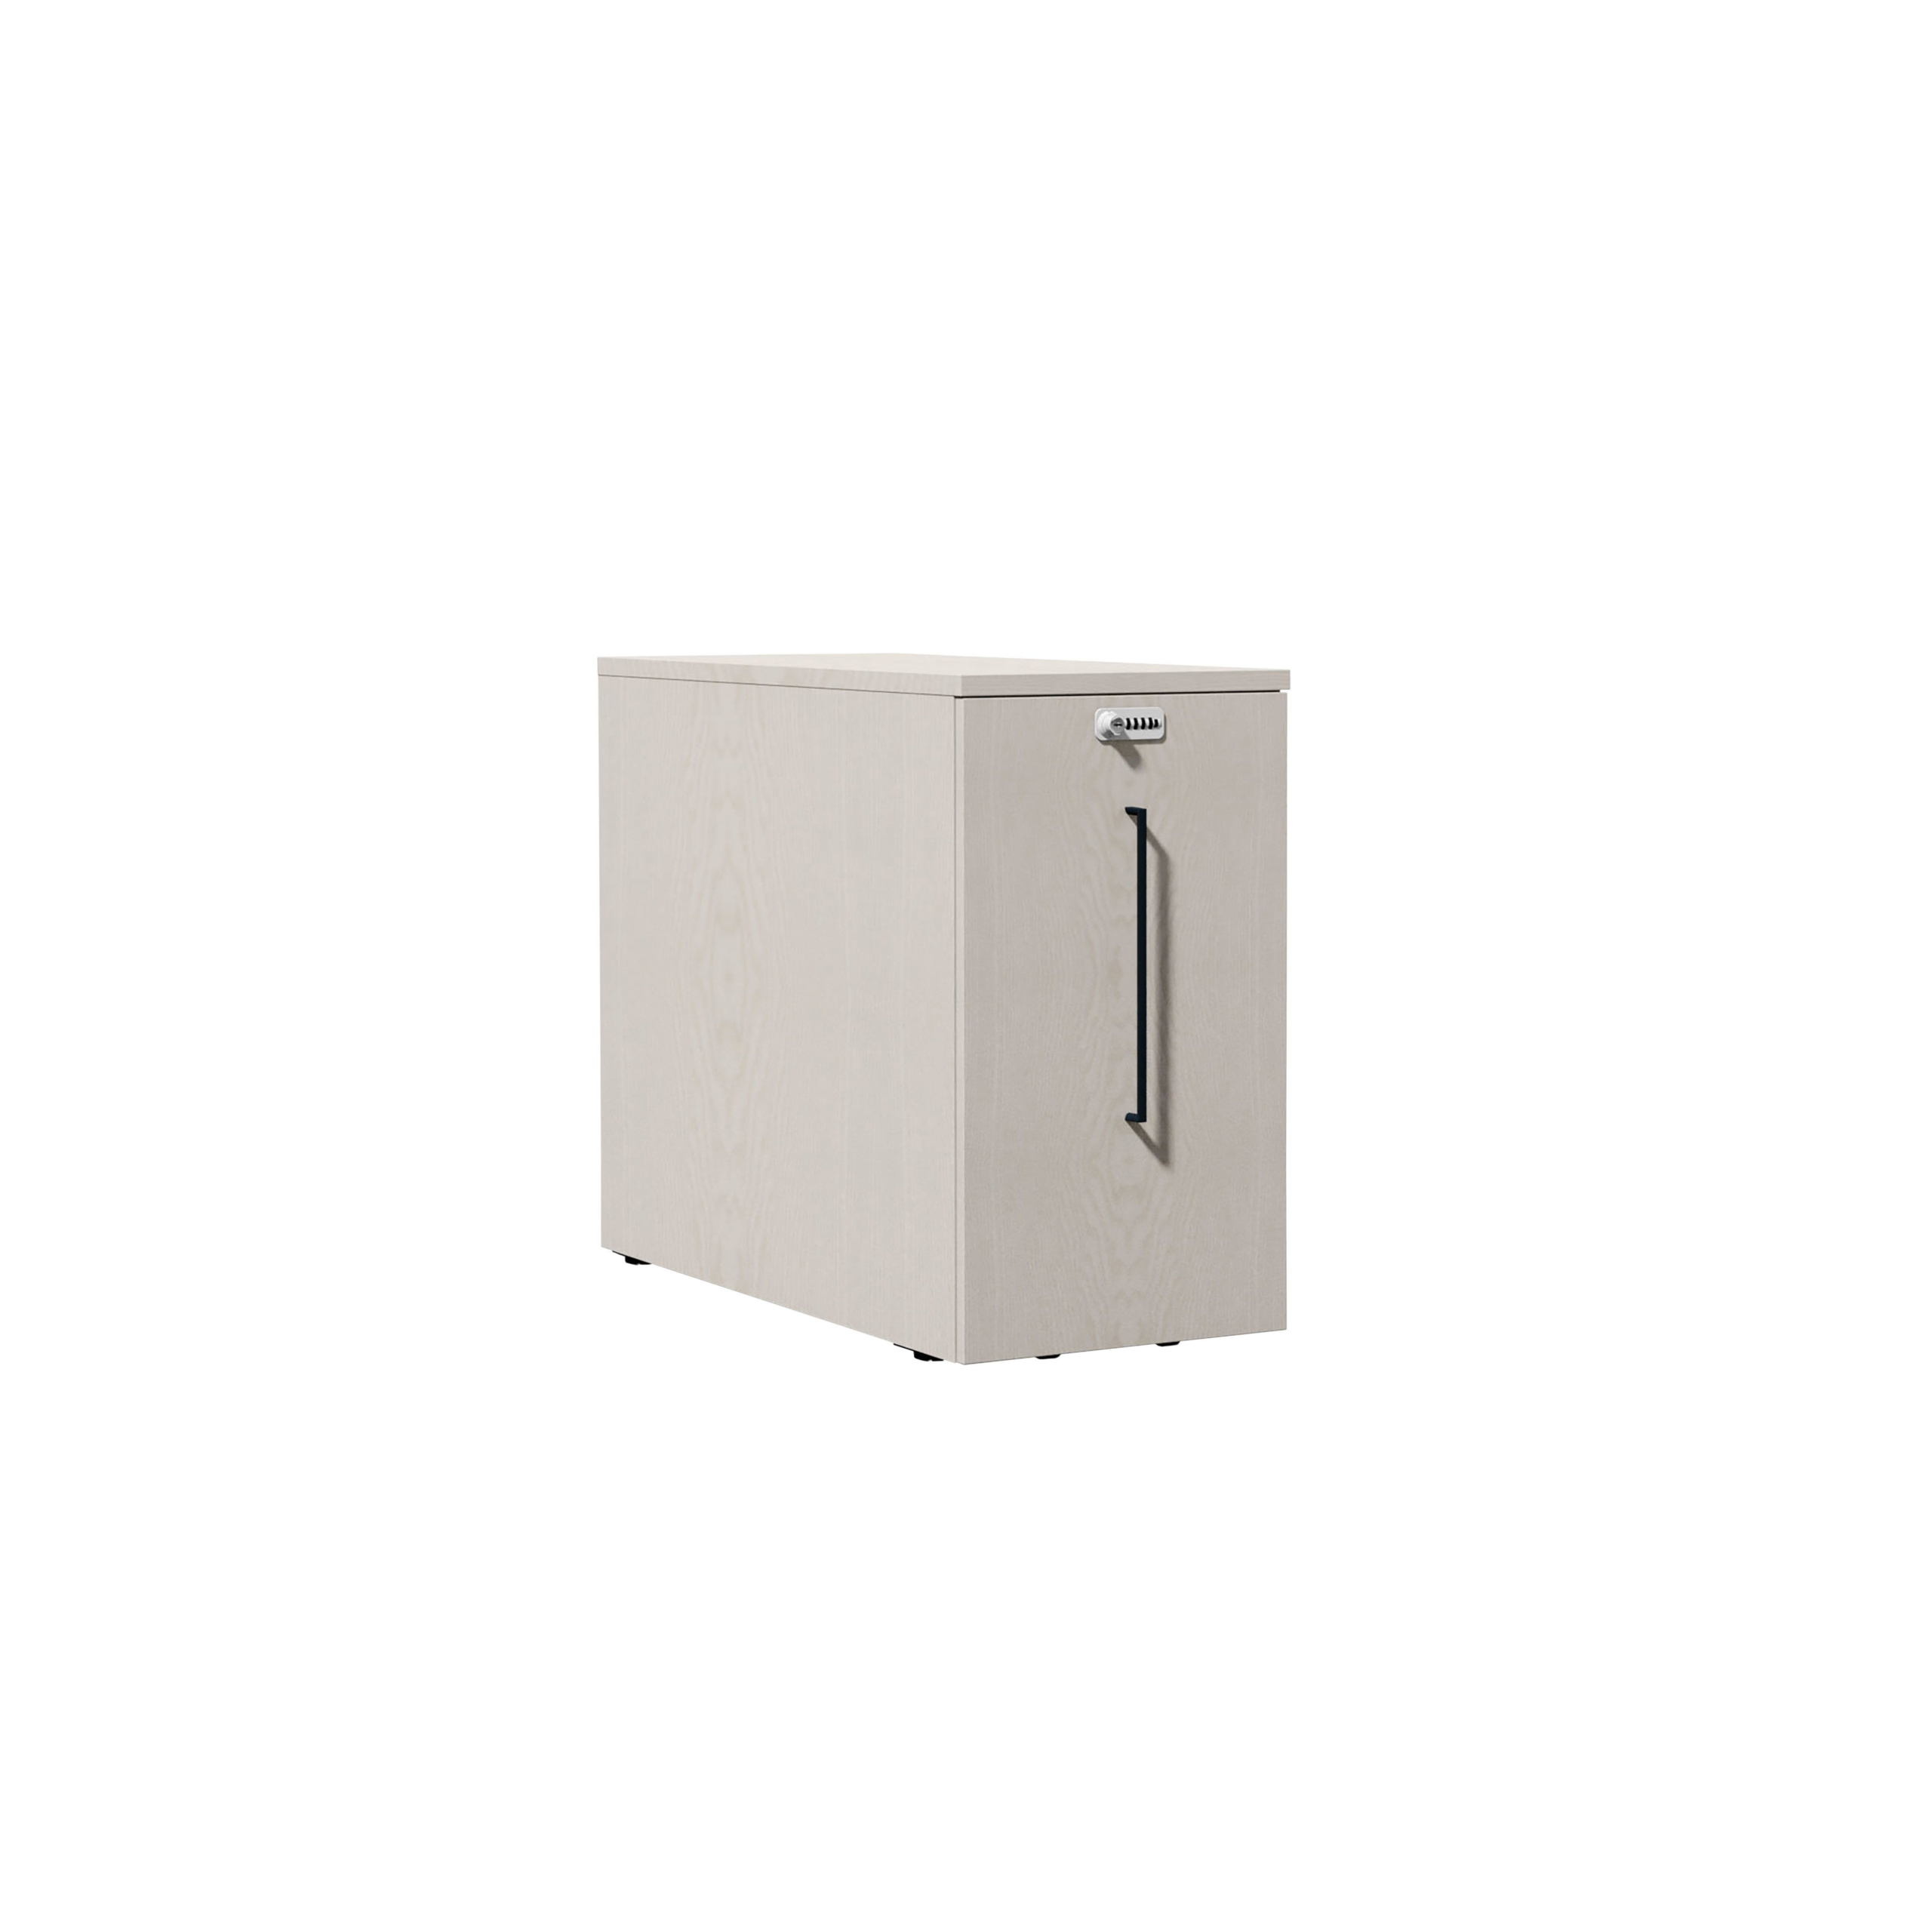 Hold Tower cabinet product image 4